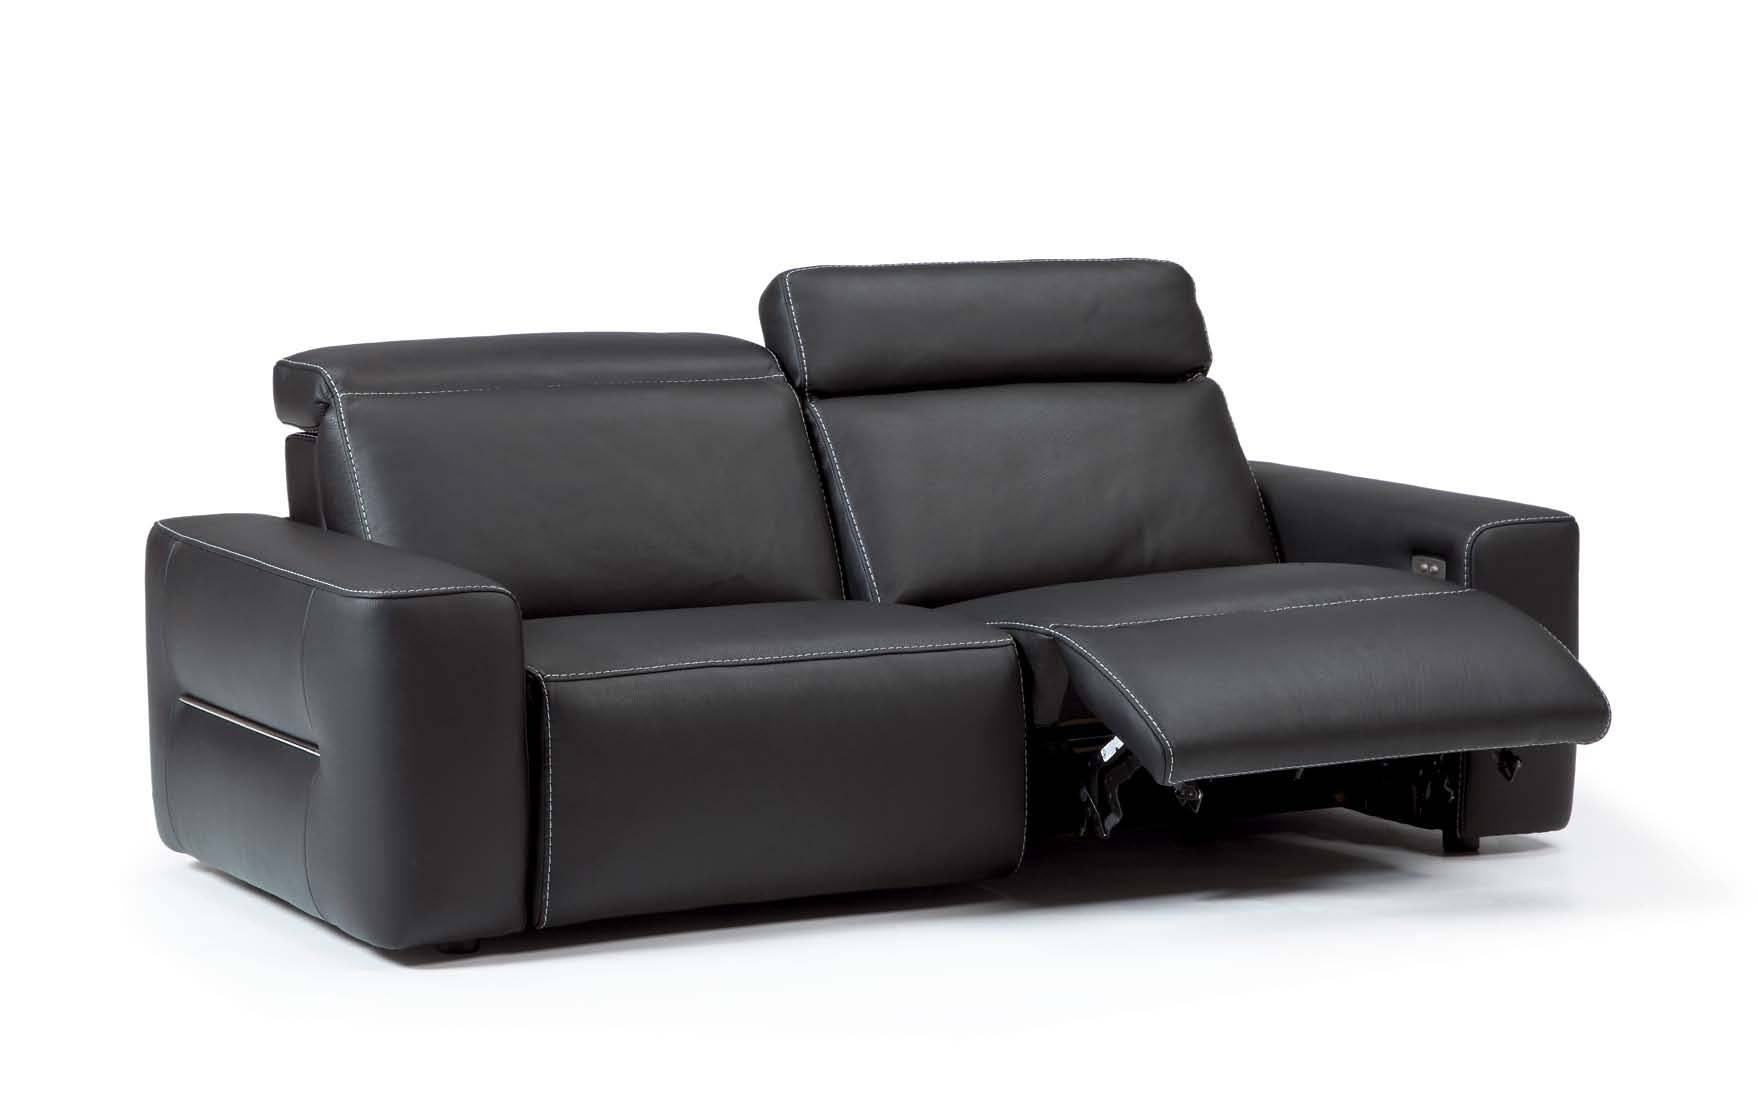 Sofa: Charming Recliner Sofa Covers Best Reclining Couches, Dfs regarding Italian Recliner Sofas (Image 14 of 15)